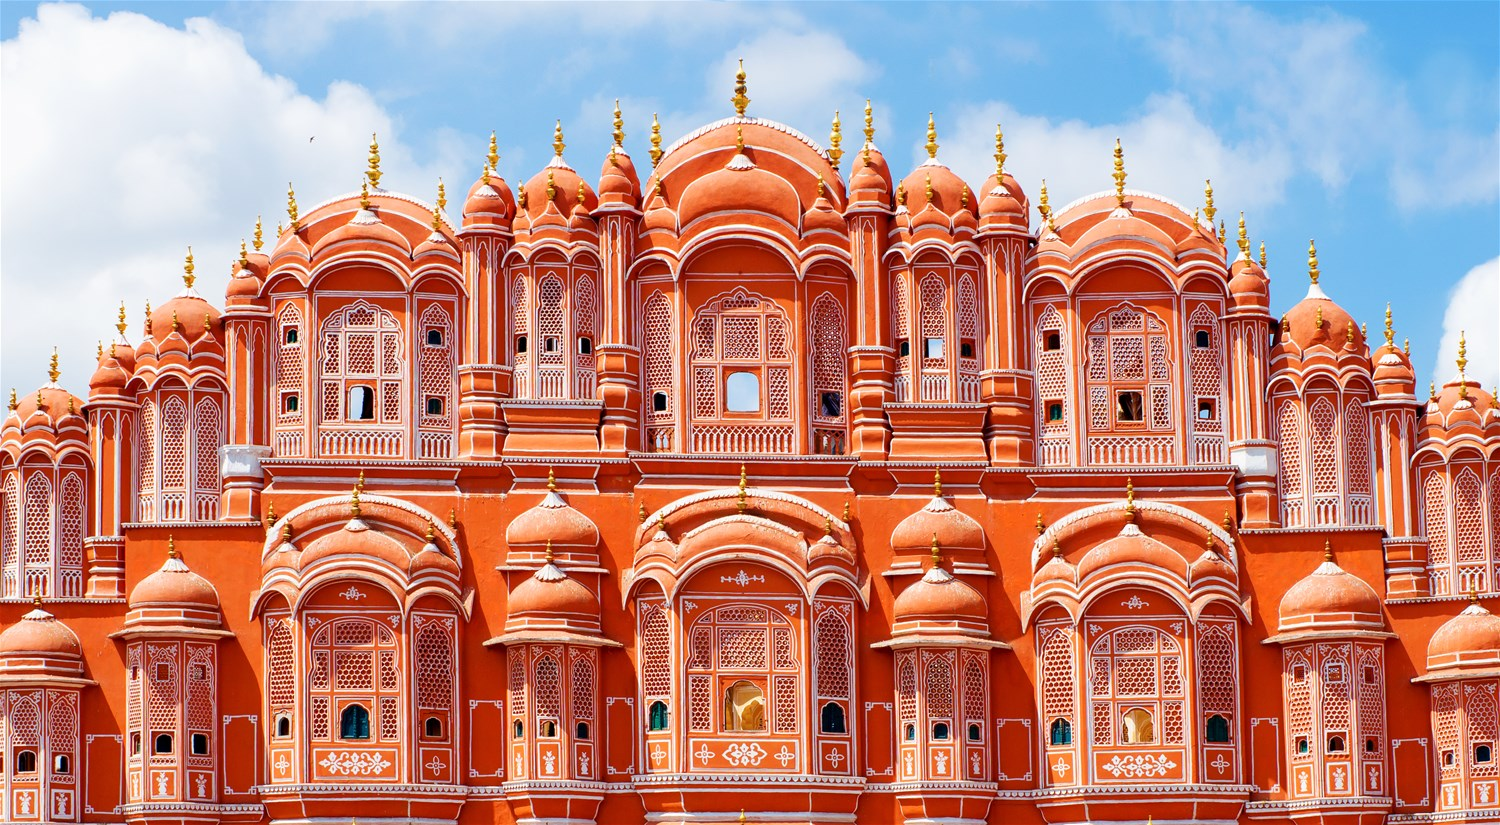 The Golden Triangle - India's Unmissable Icons